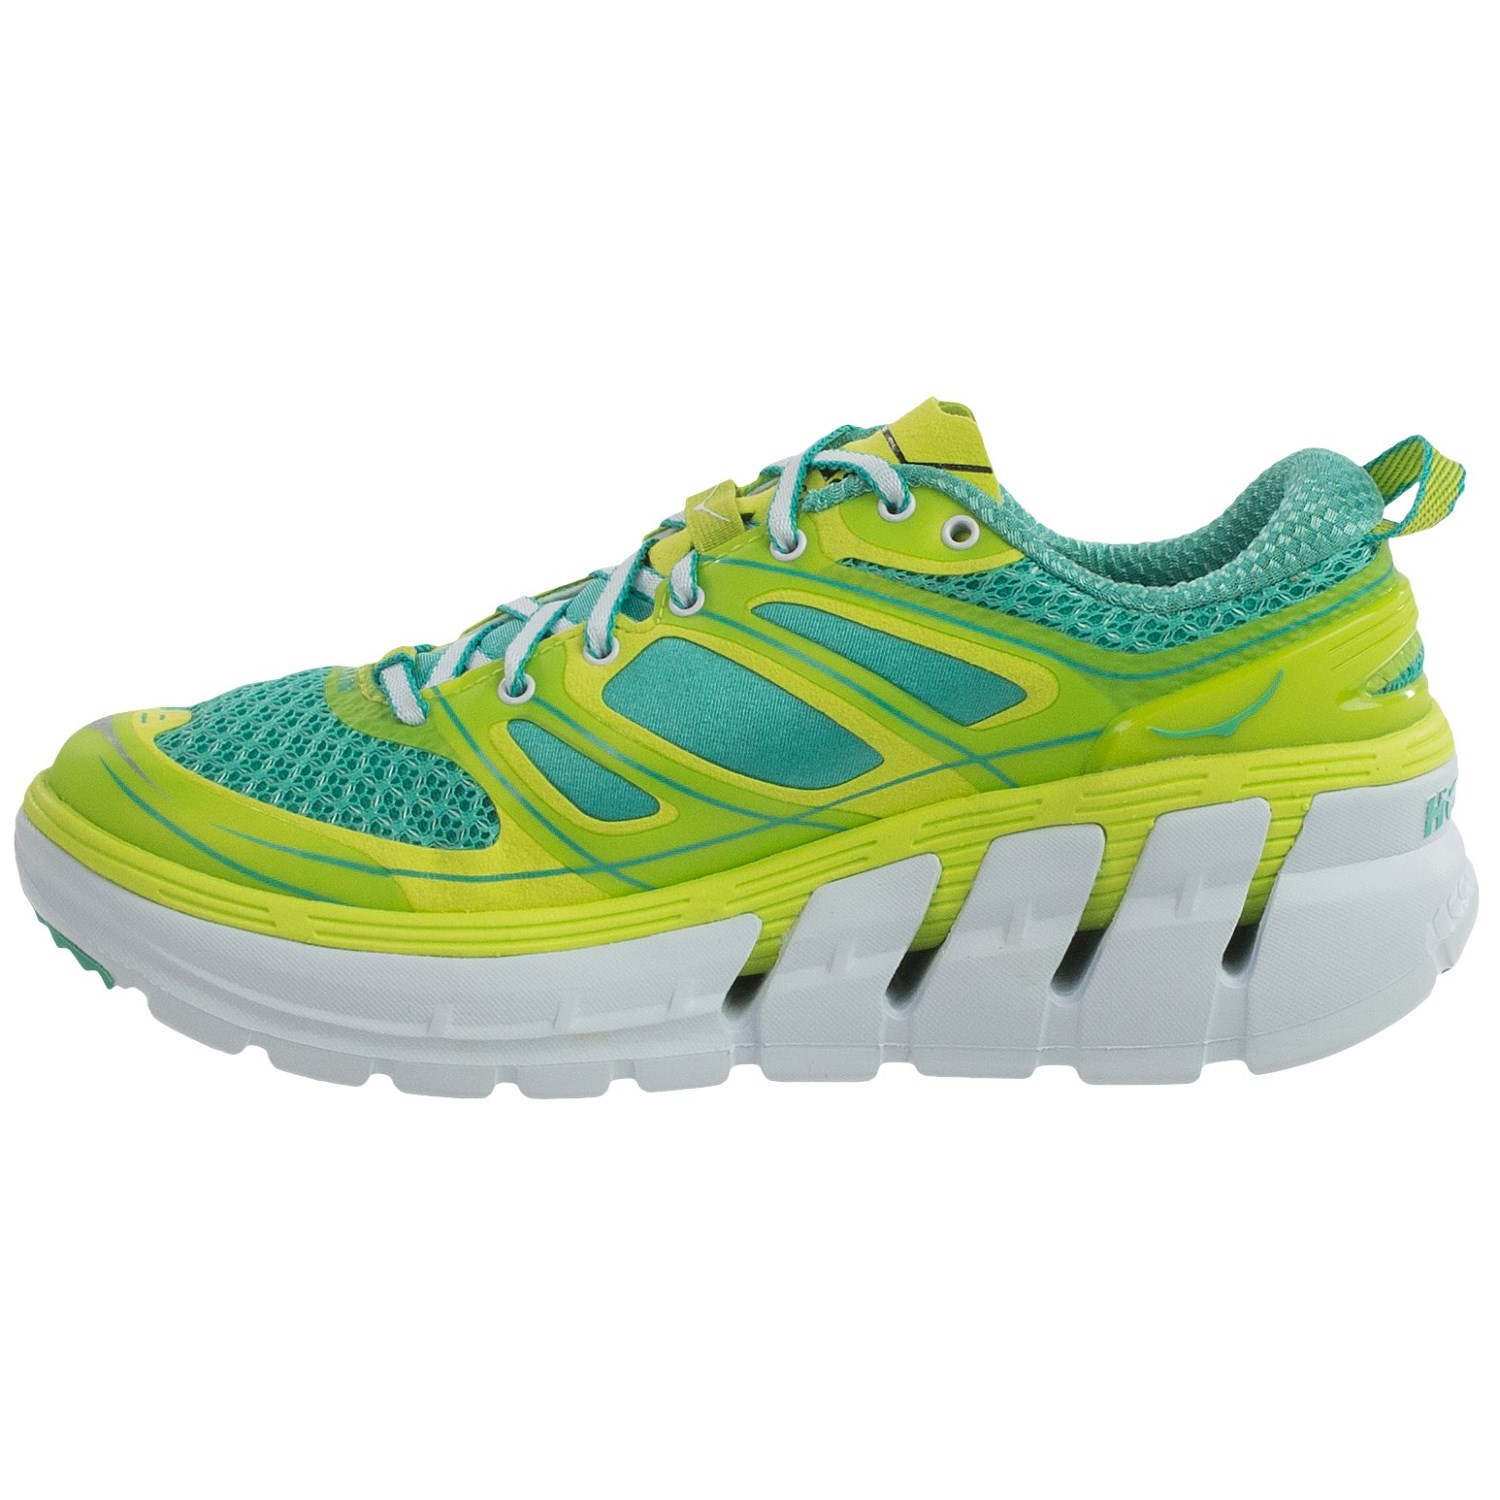 Hoka One One Shoes Reviews